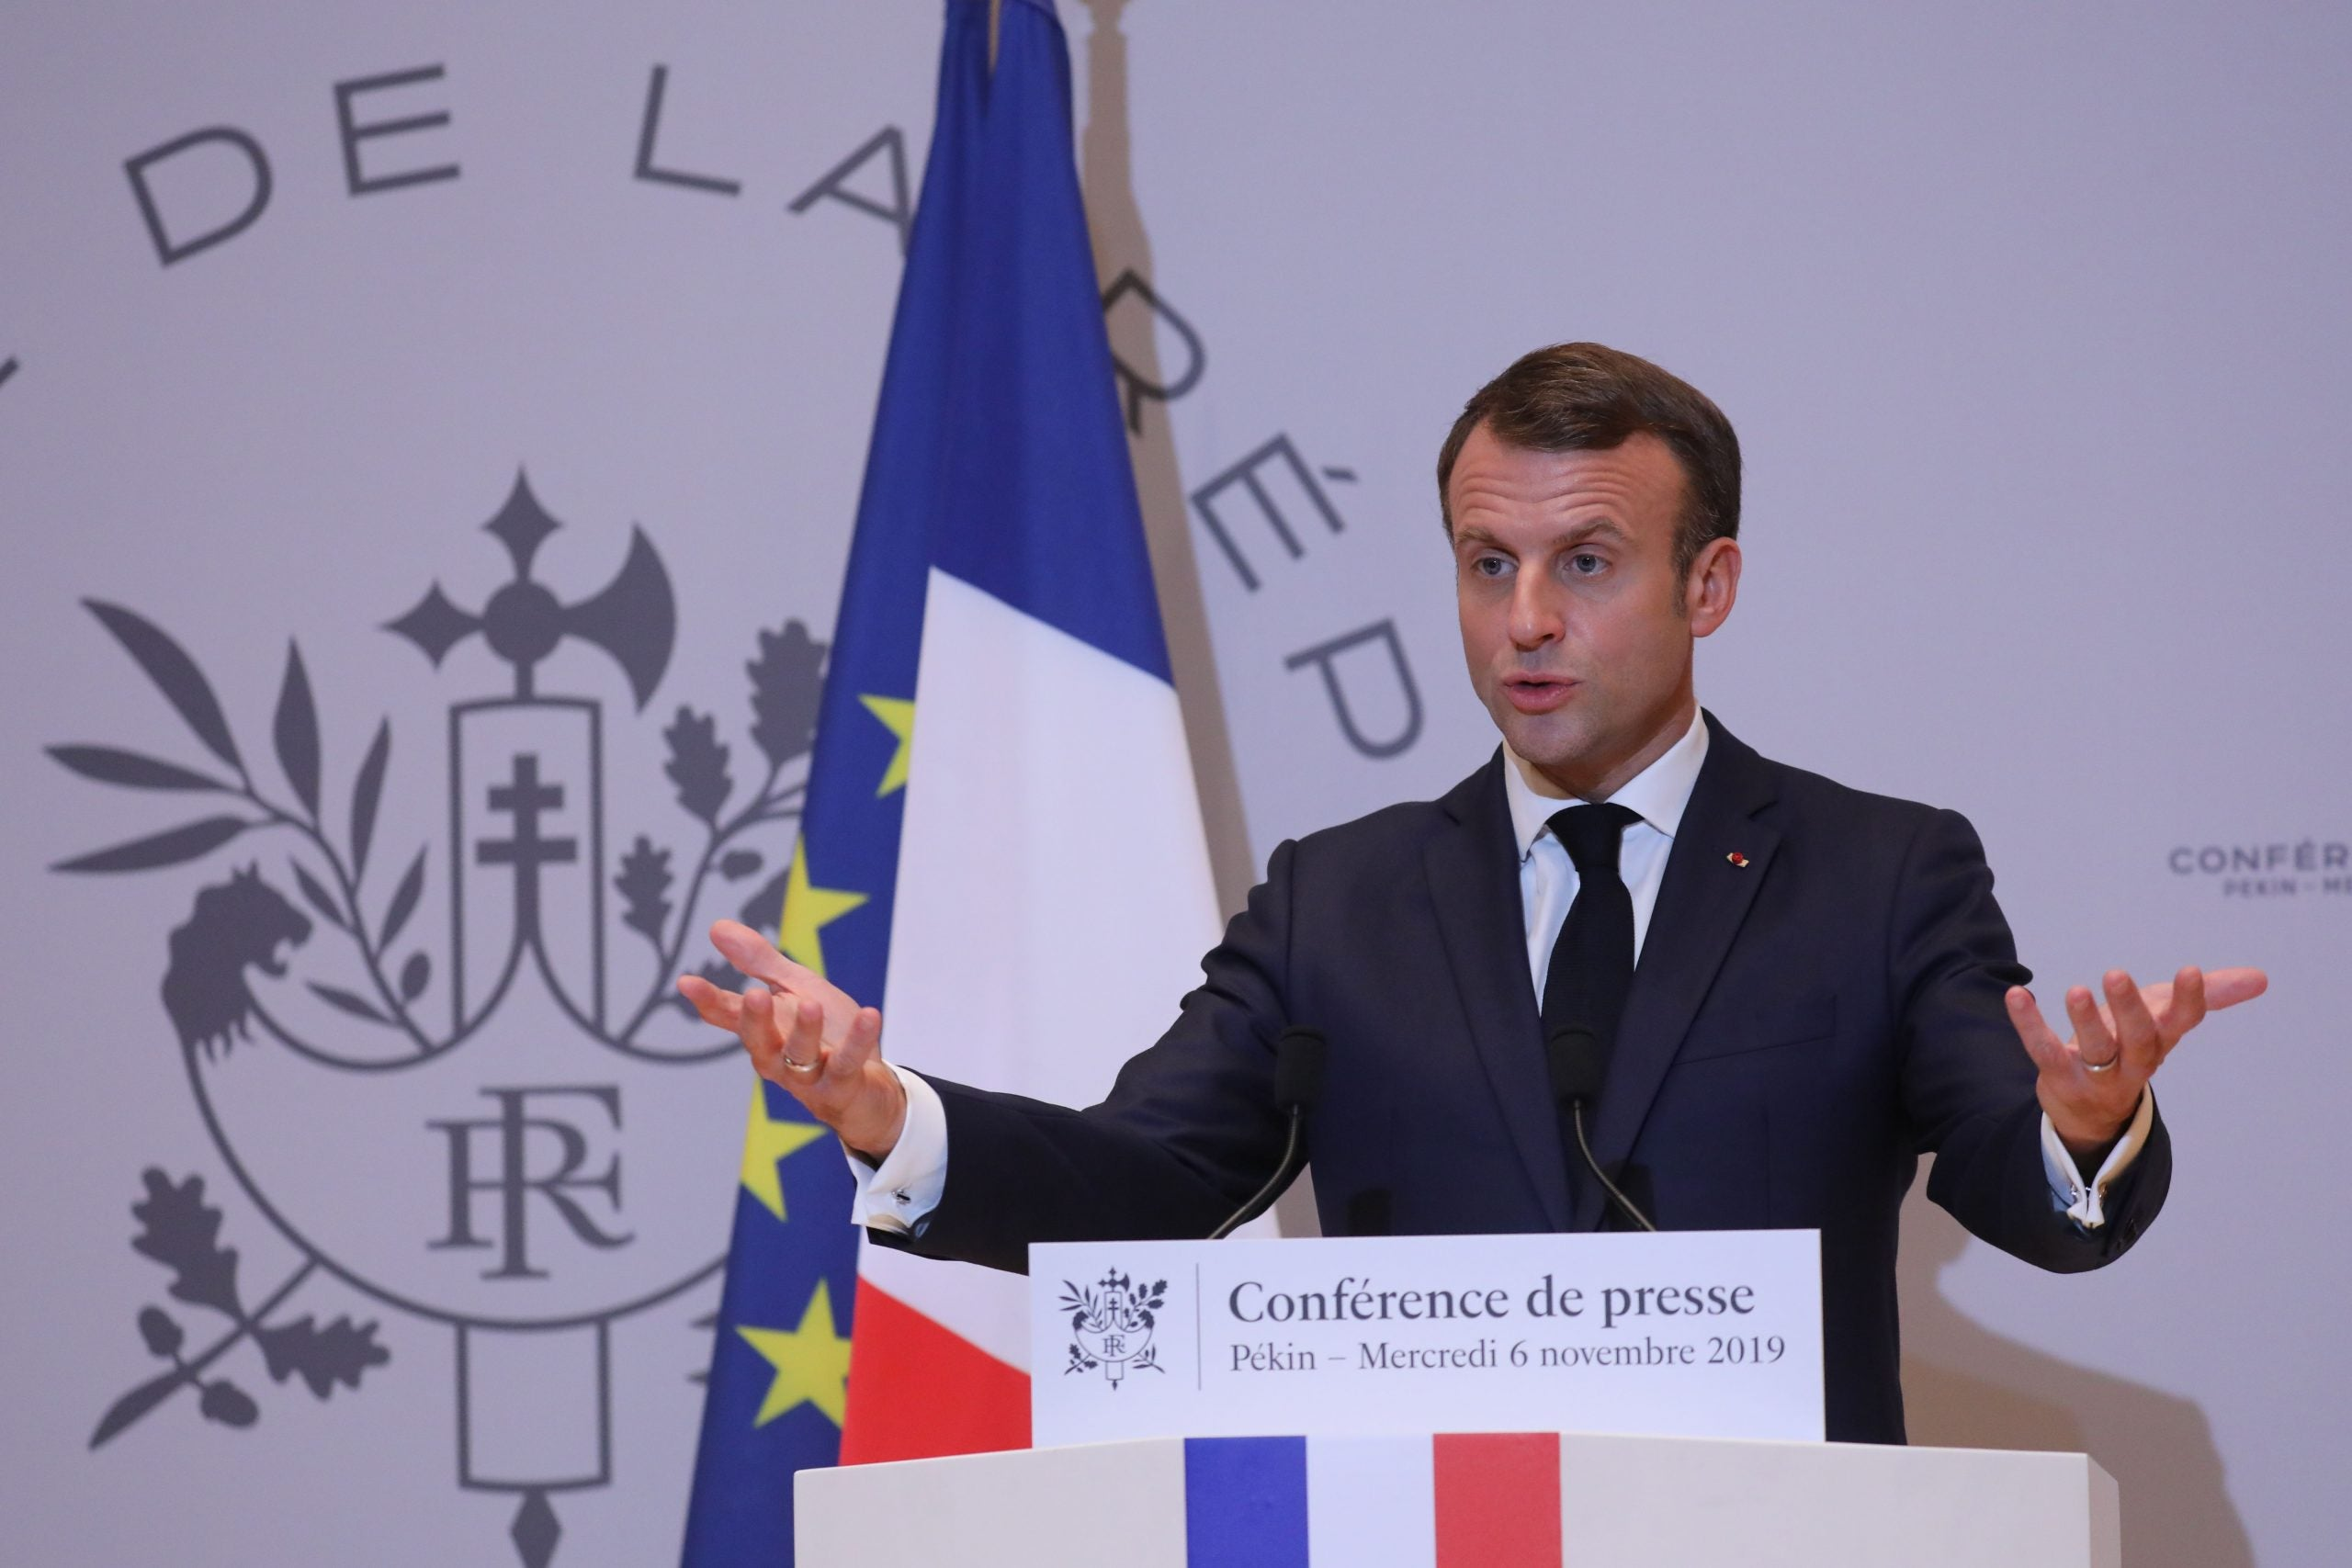 Emmanuel Macron's welfare cuts show UK-style austerity has come to France